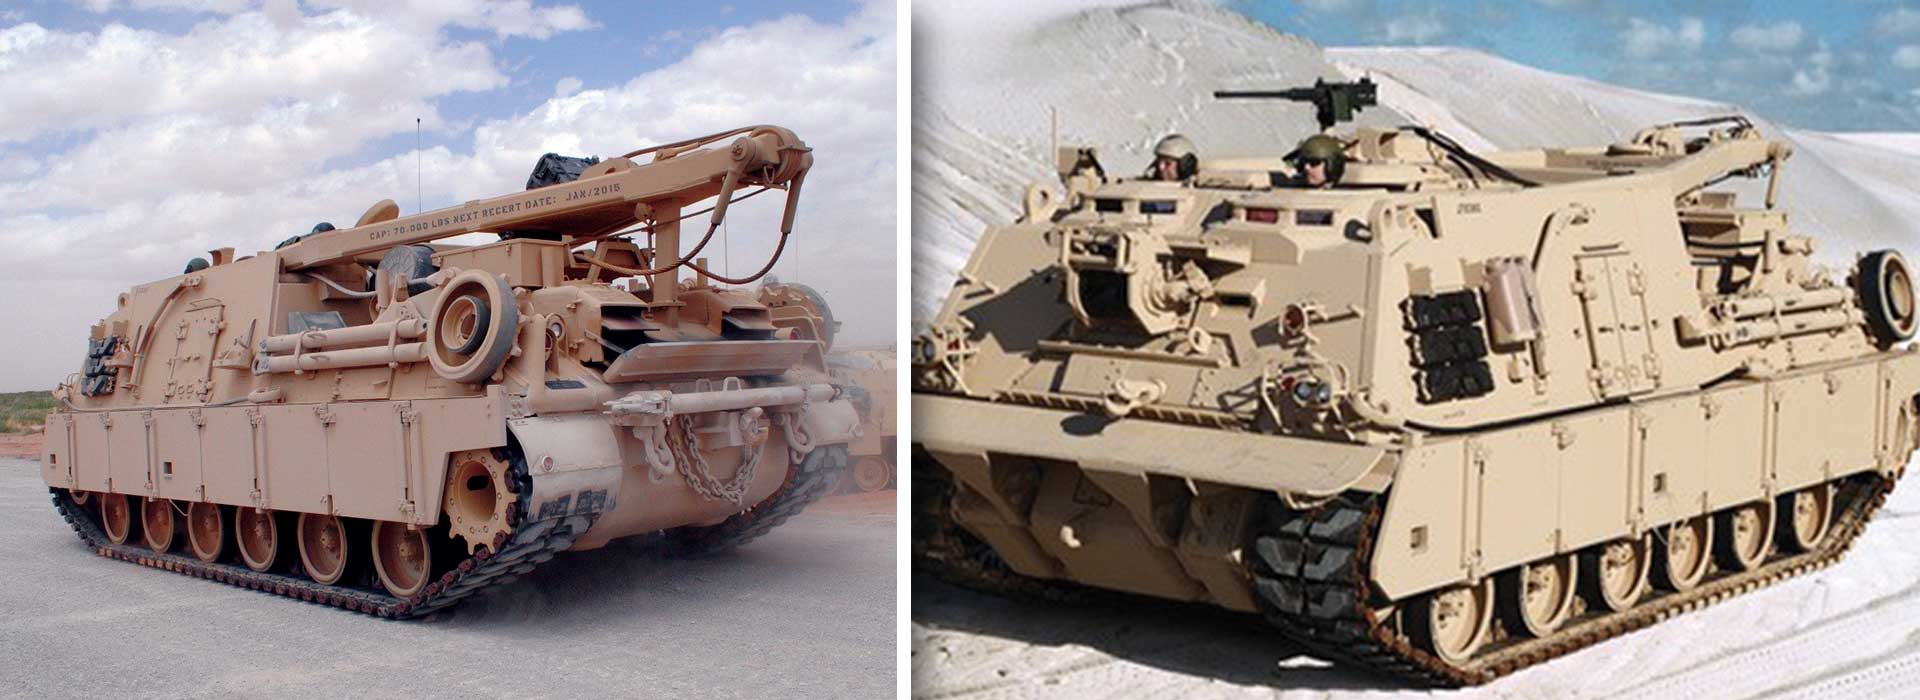 Heavy Equipment Recovery Combat Utility Lift and Evacuation System (HERCULES) Improved Recovery Vehicle — M88A2